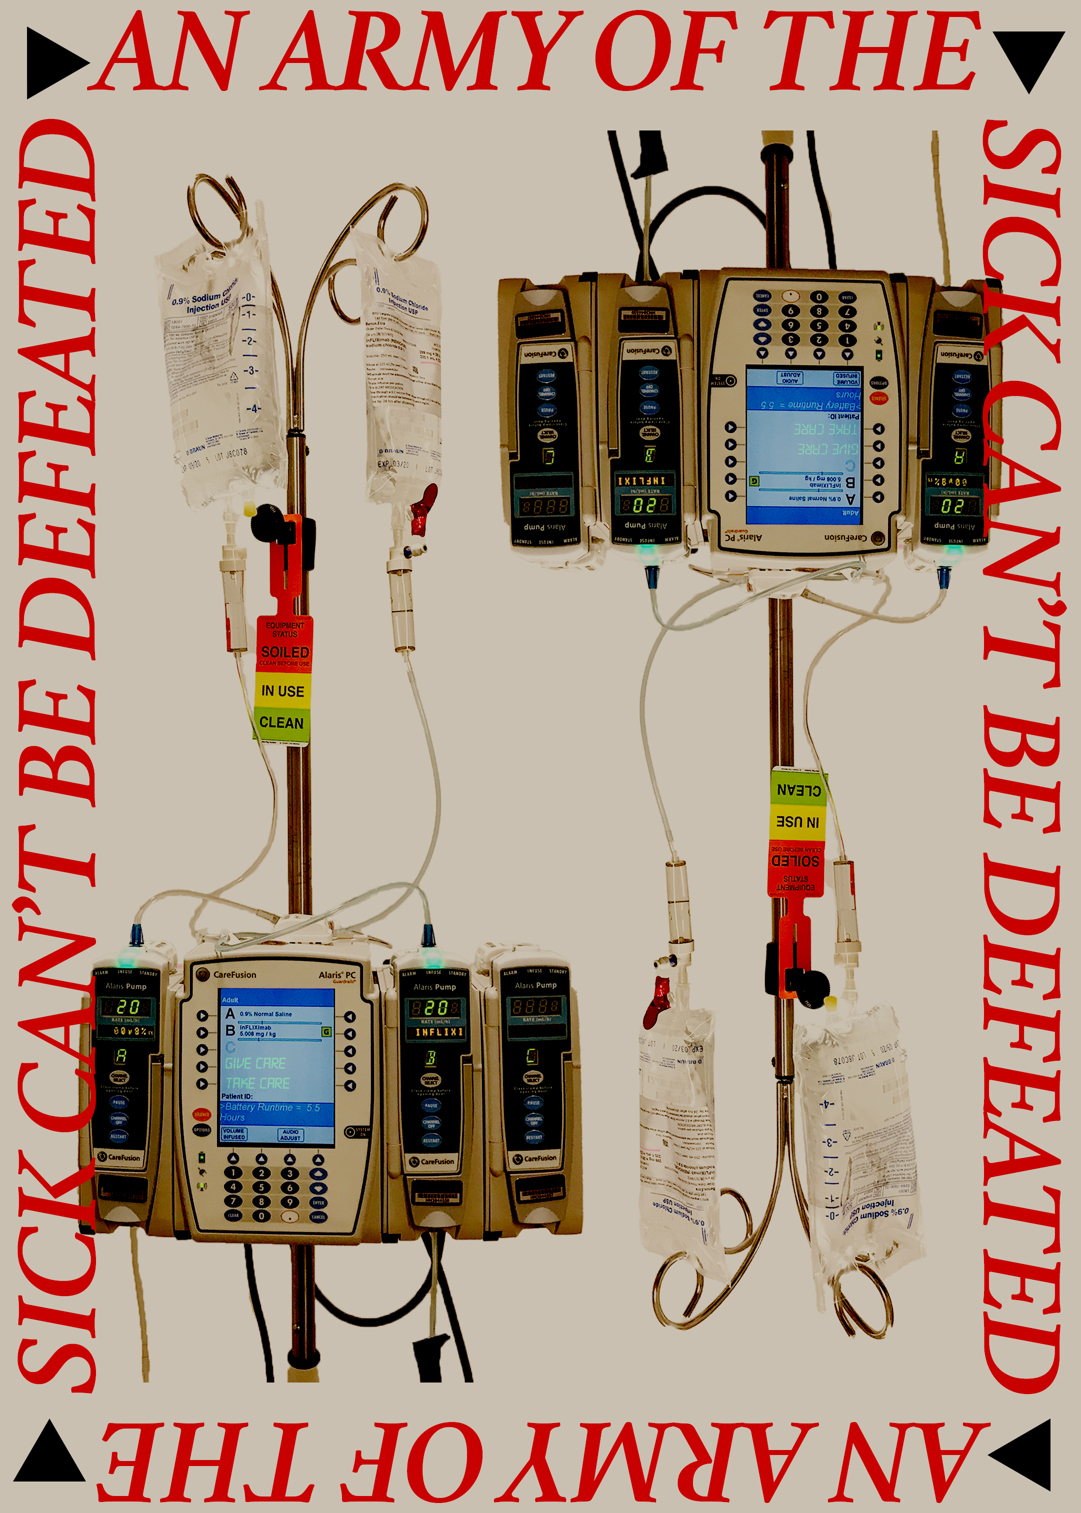 In the centre of this digital collage are two IV machines and drips. They are presented next to each other with the machine on the right rotated 180 degrees. Around these is a border of red text which frames the image and reads: 'An army of the sick